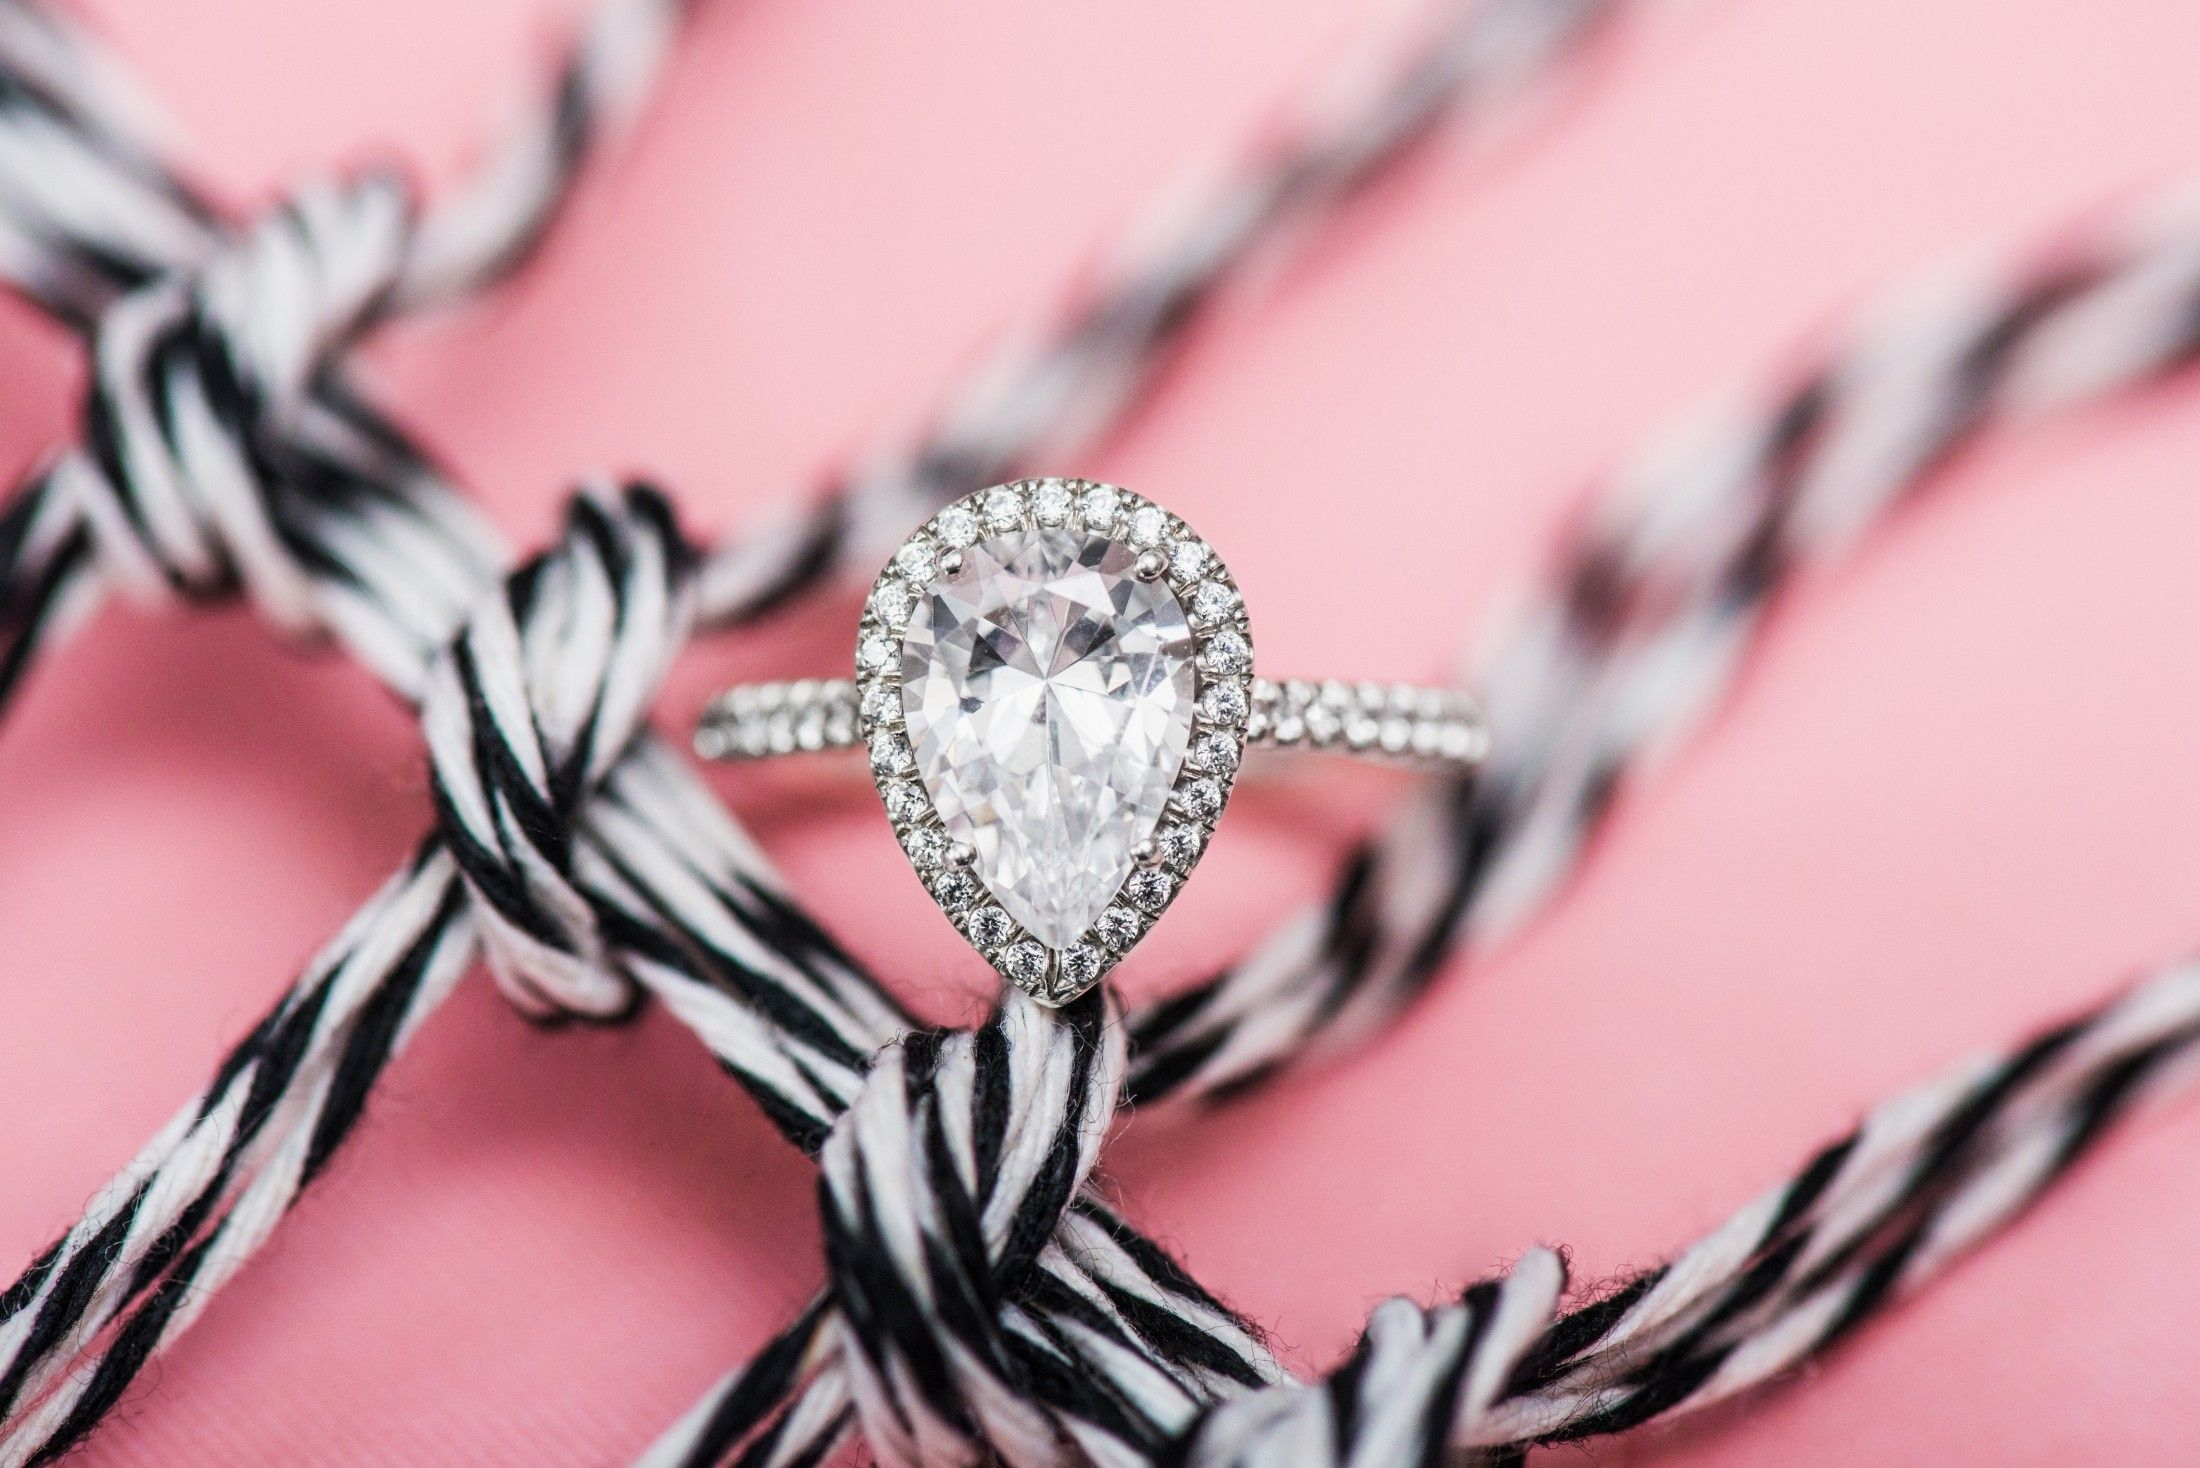 ad] Beautiful rings are waiting! Click to shop JamesAllen.com ...